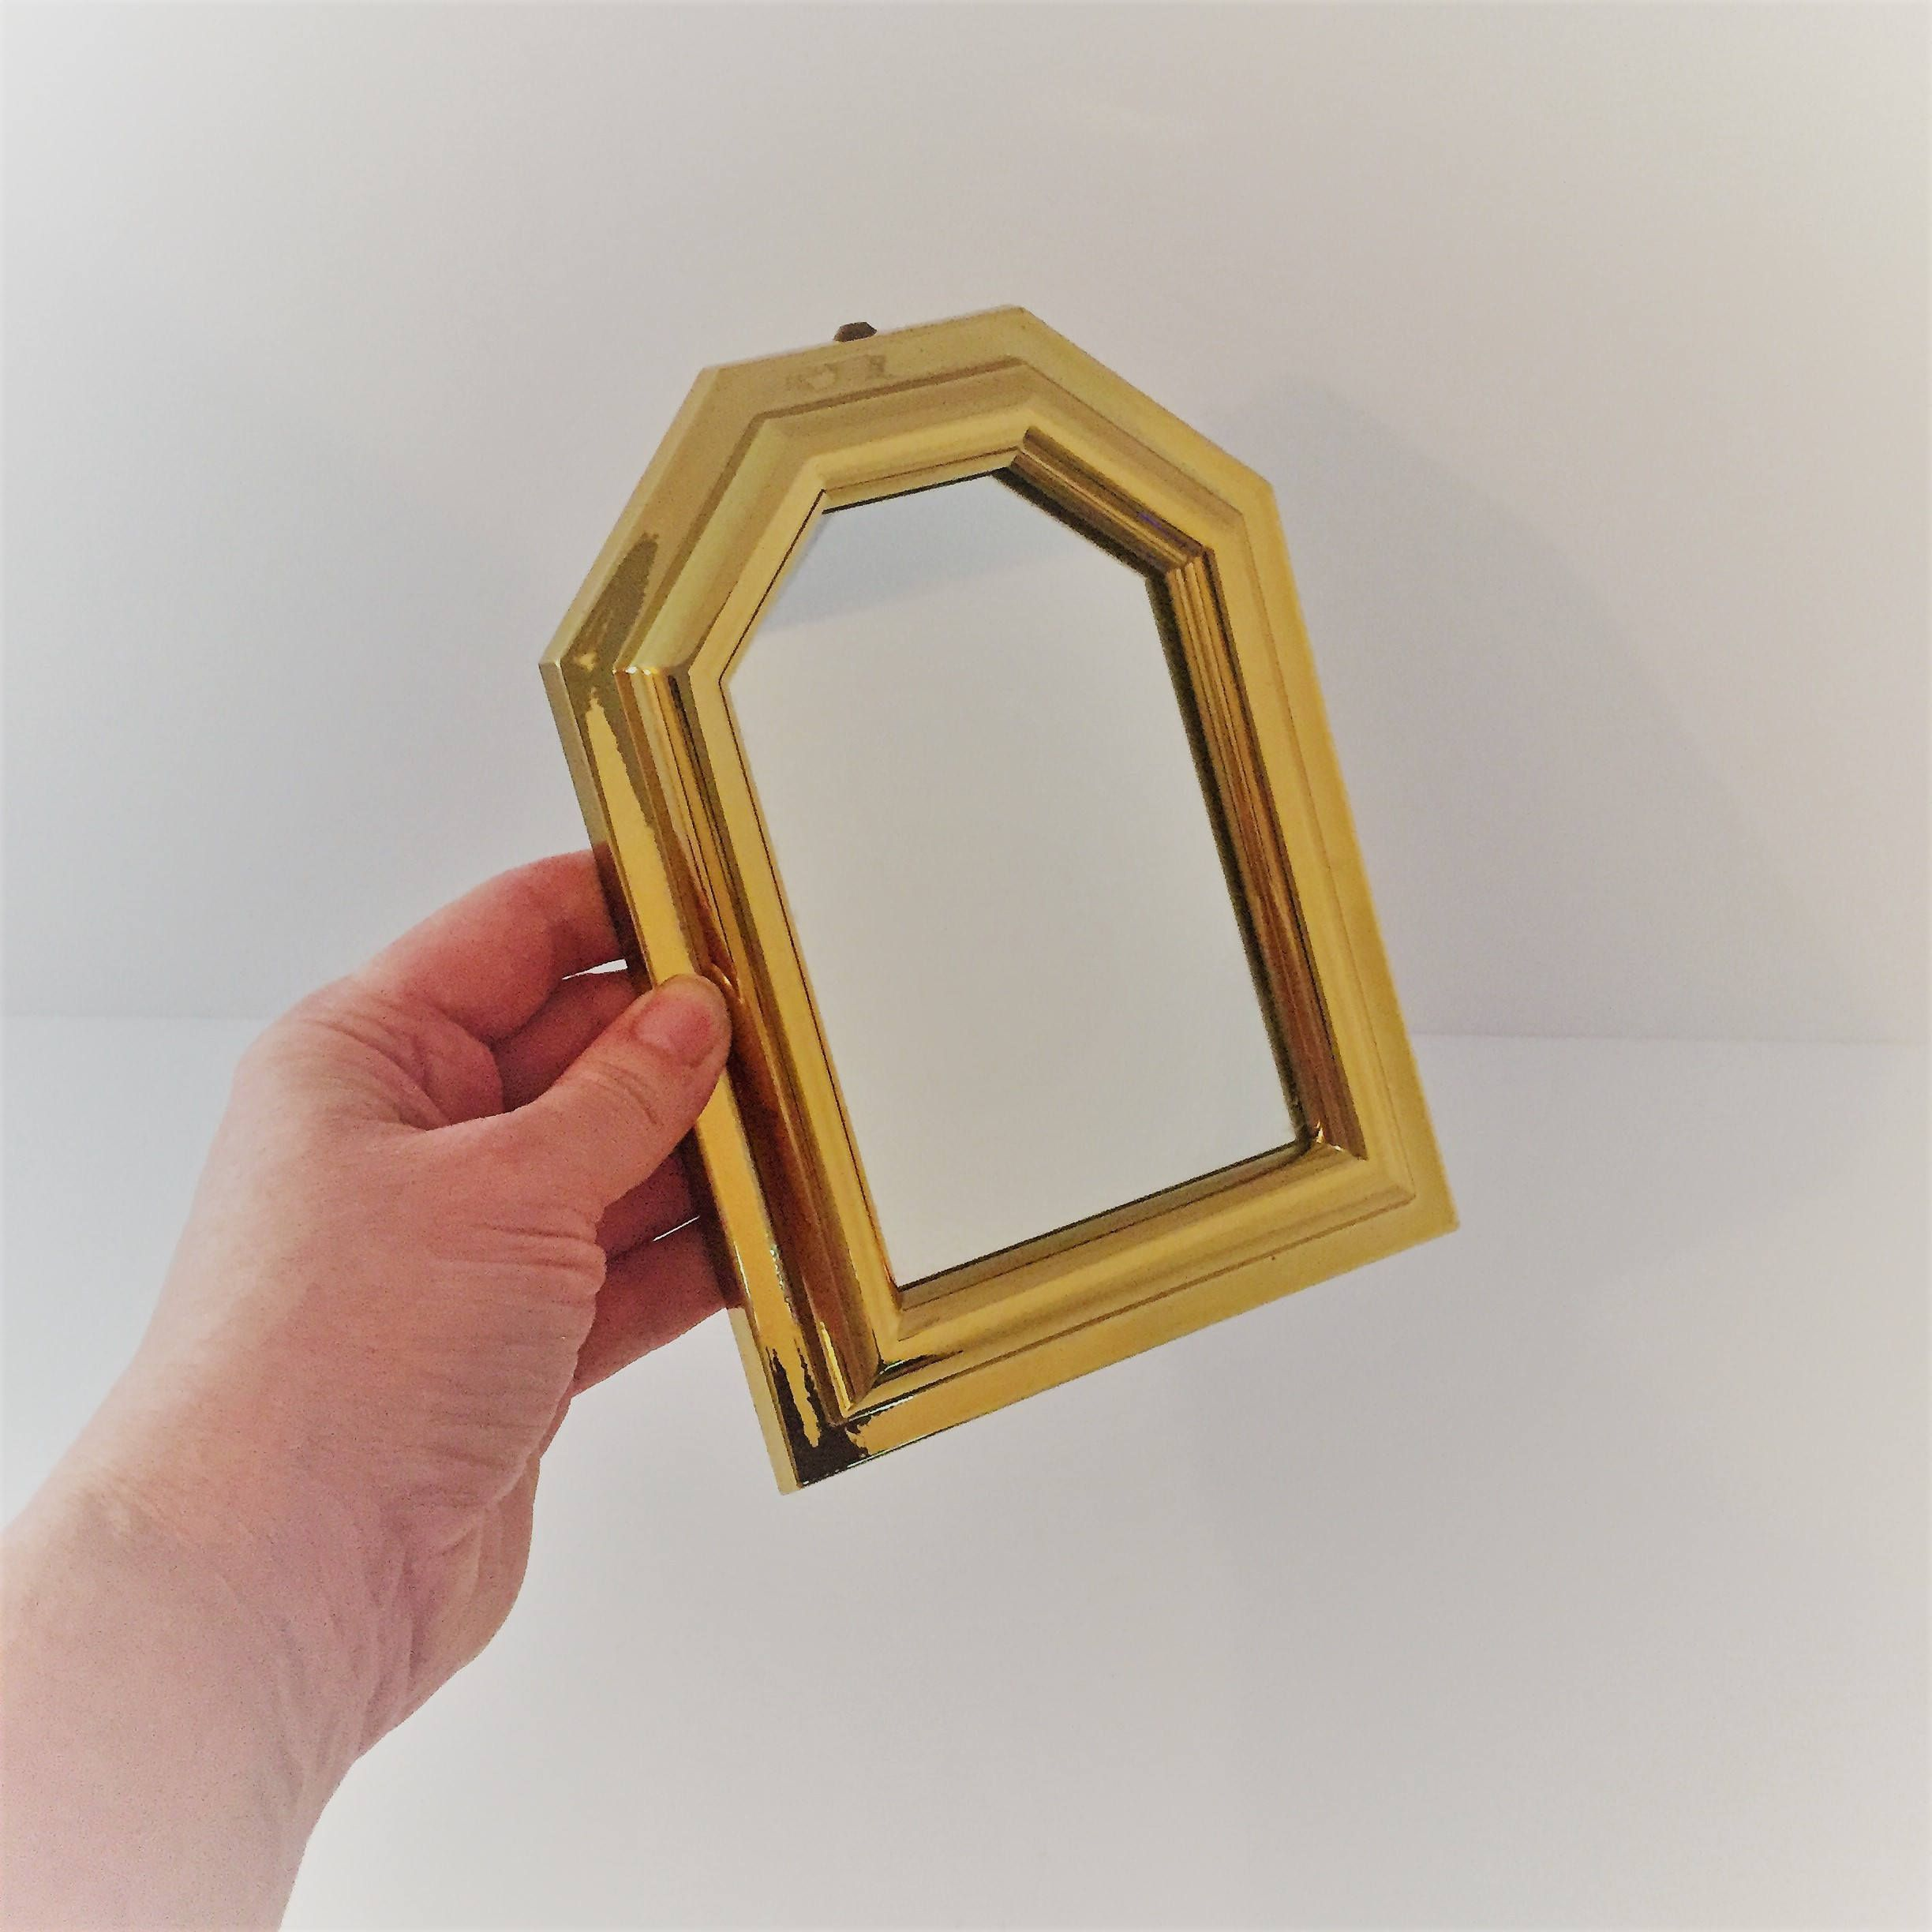 Vintage Gold Mirror Decorative Gold Wall Mirror Lightweight - Decorative gold mirrors